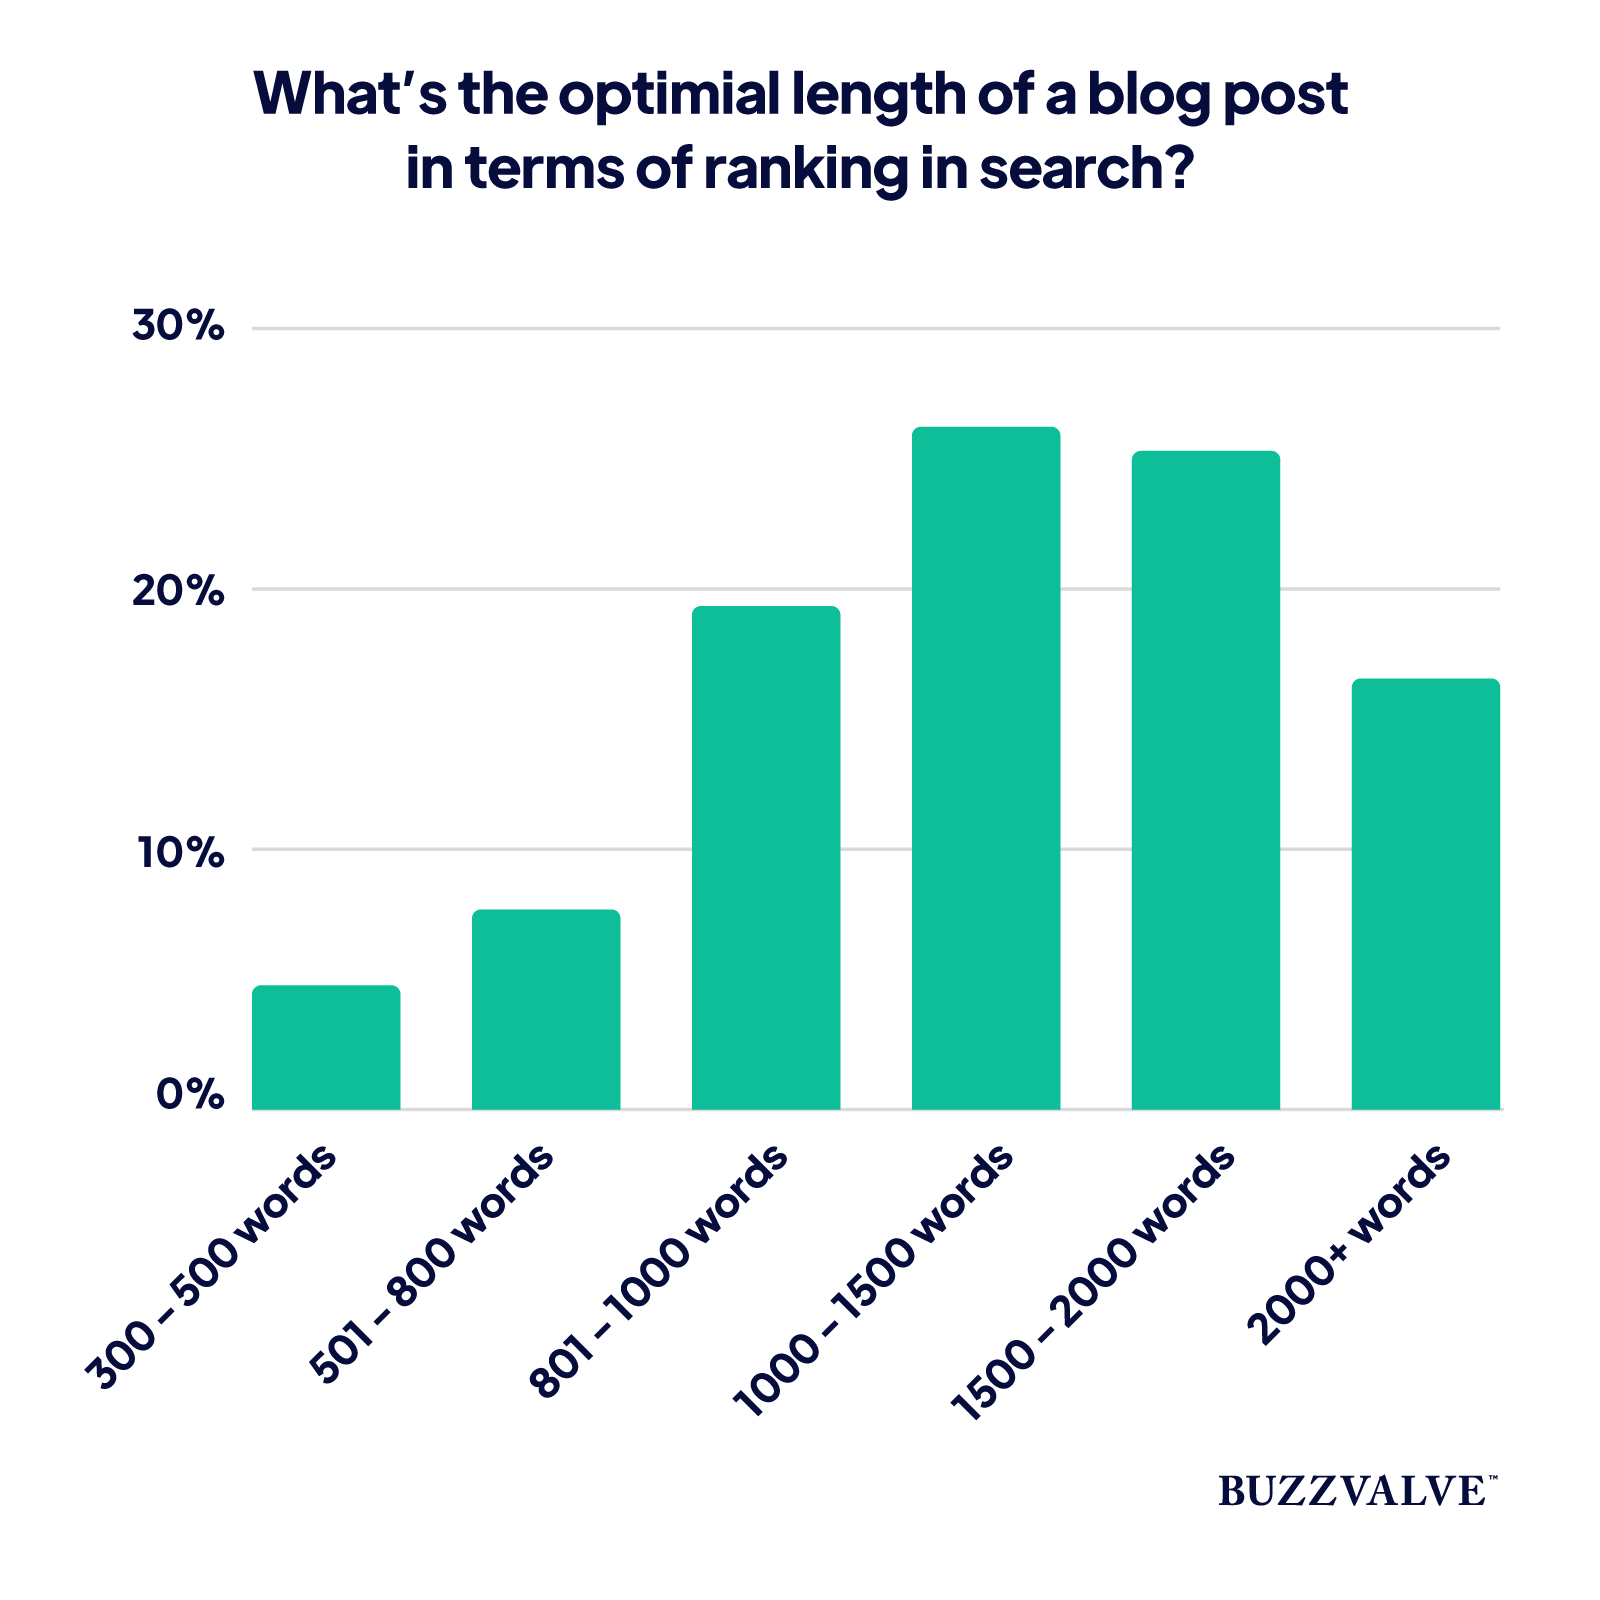 Optimal blog post length in terms of search ranking